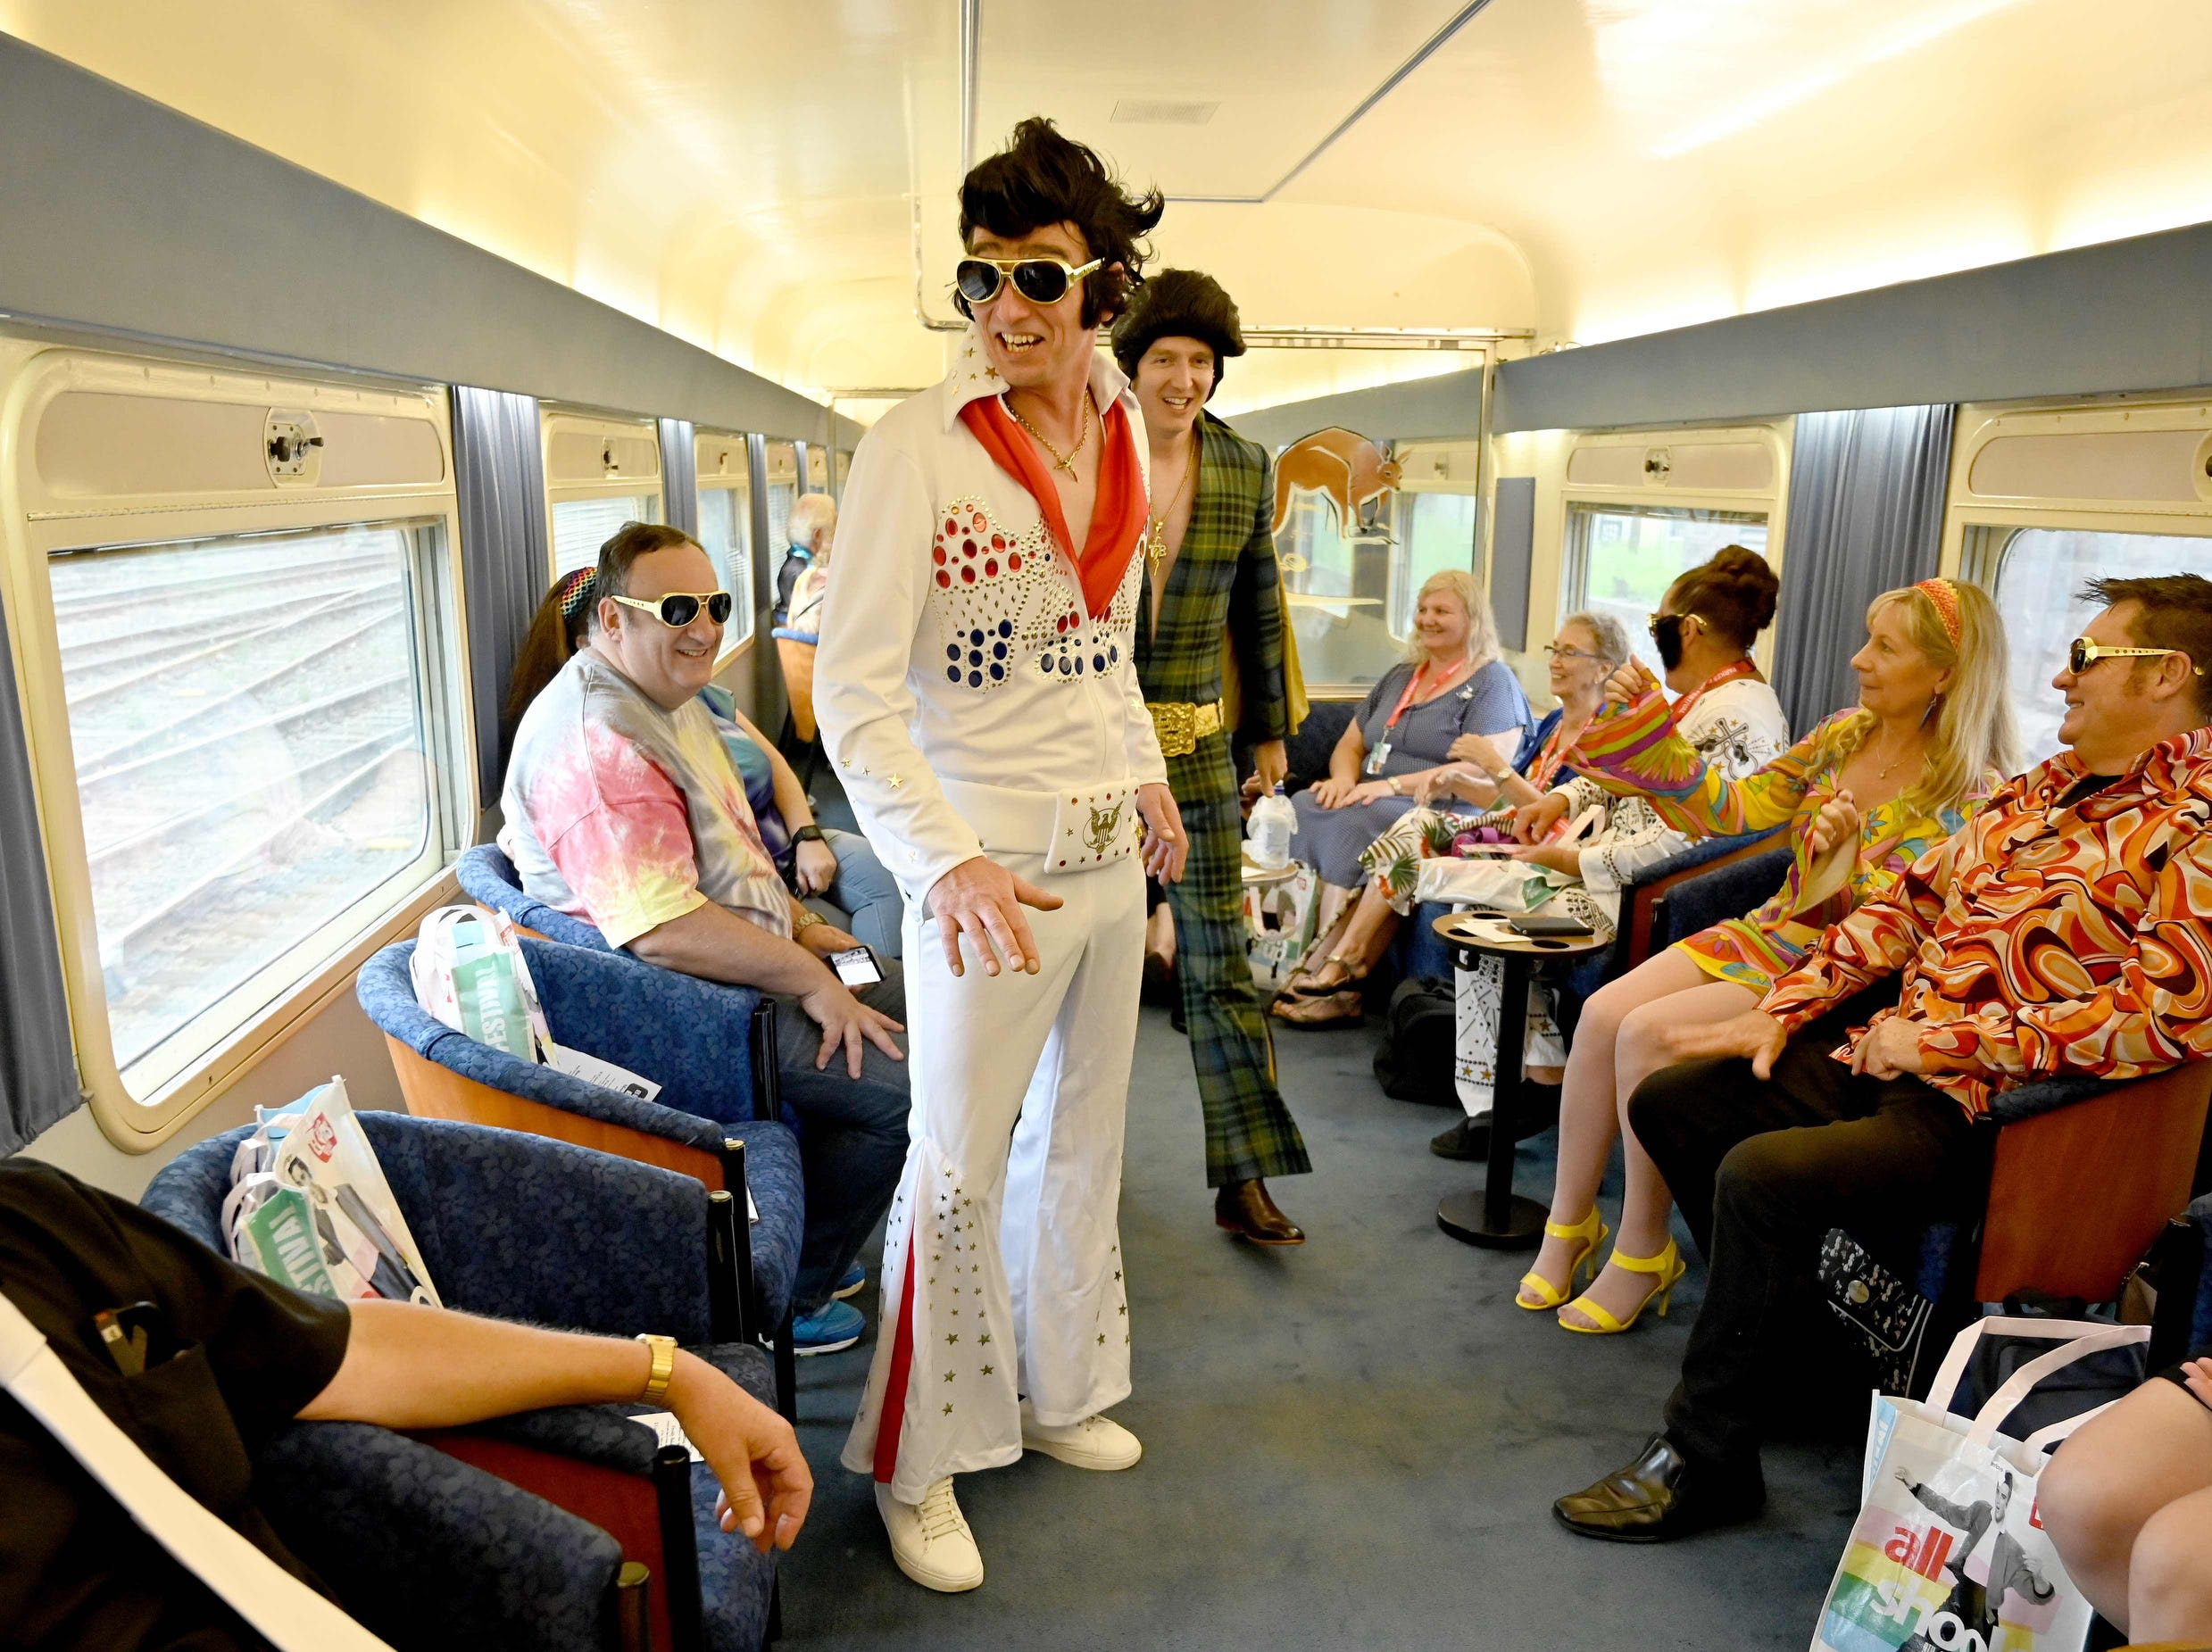 Elvis fans  enjoy the scene on a train a heading to The Parkes Elvis Festival.